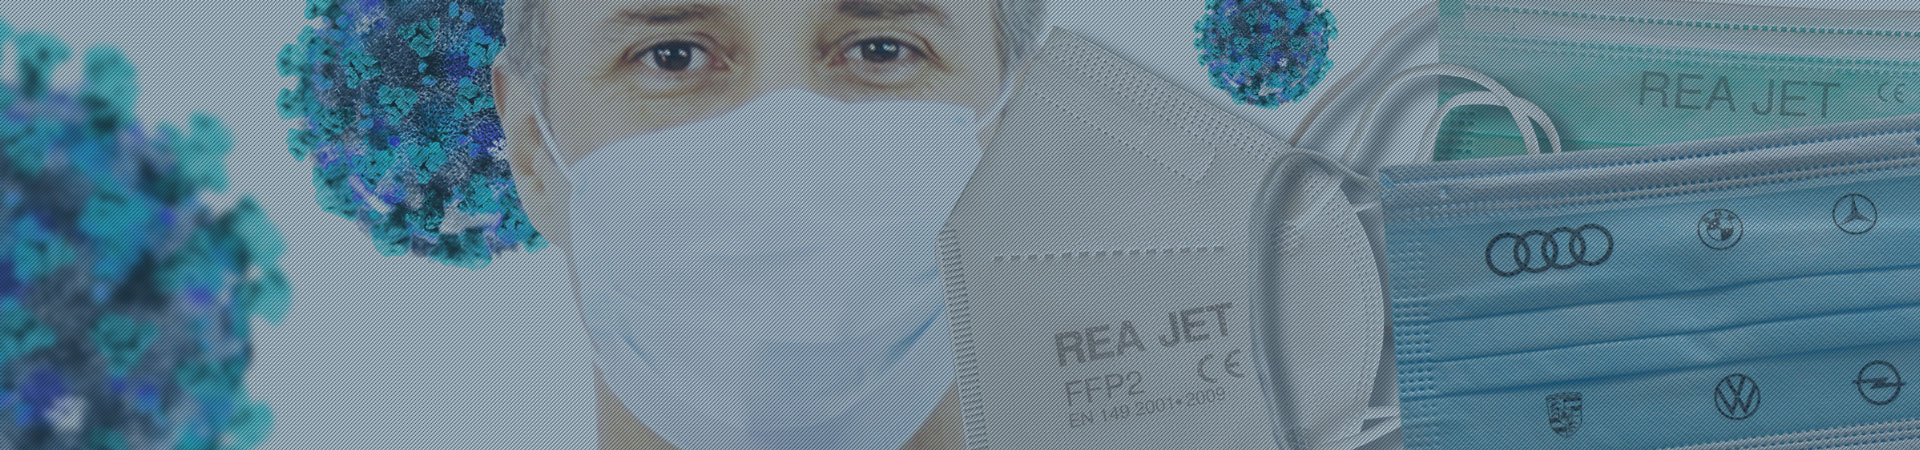 Respirator masks marking with CE marking, protection class and EU standard - REA JET HR